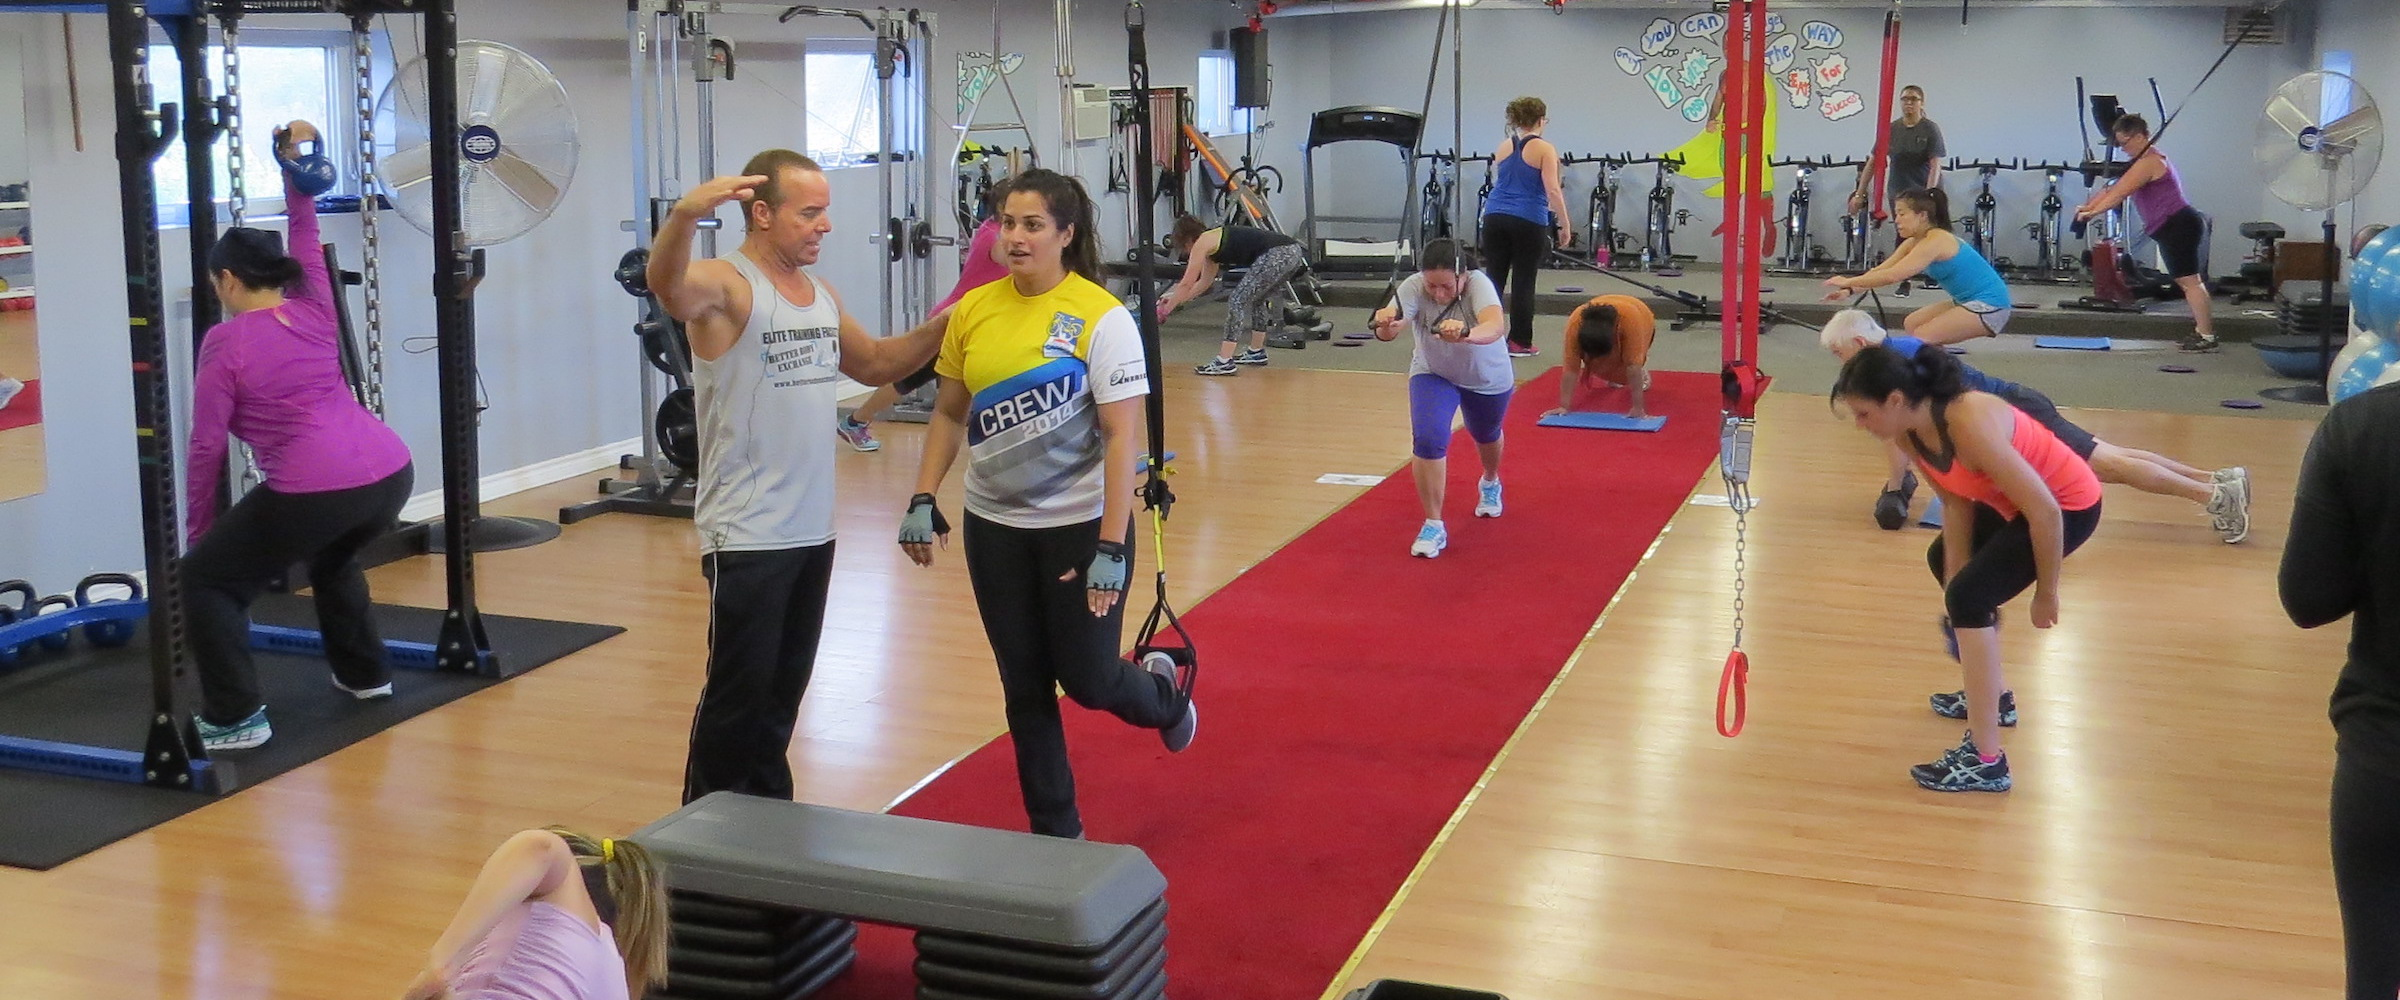 Group Fitness Classes at Elite Training Facility